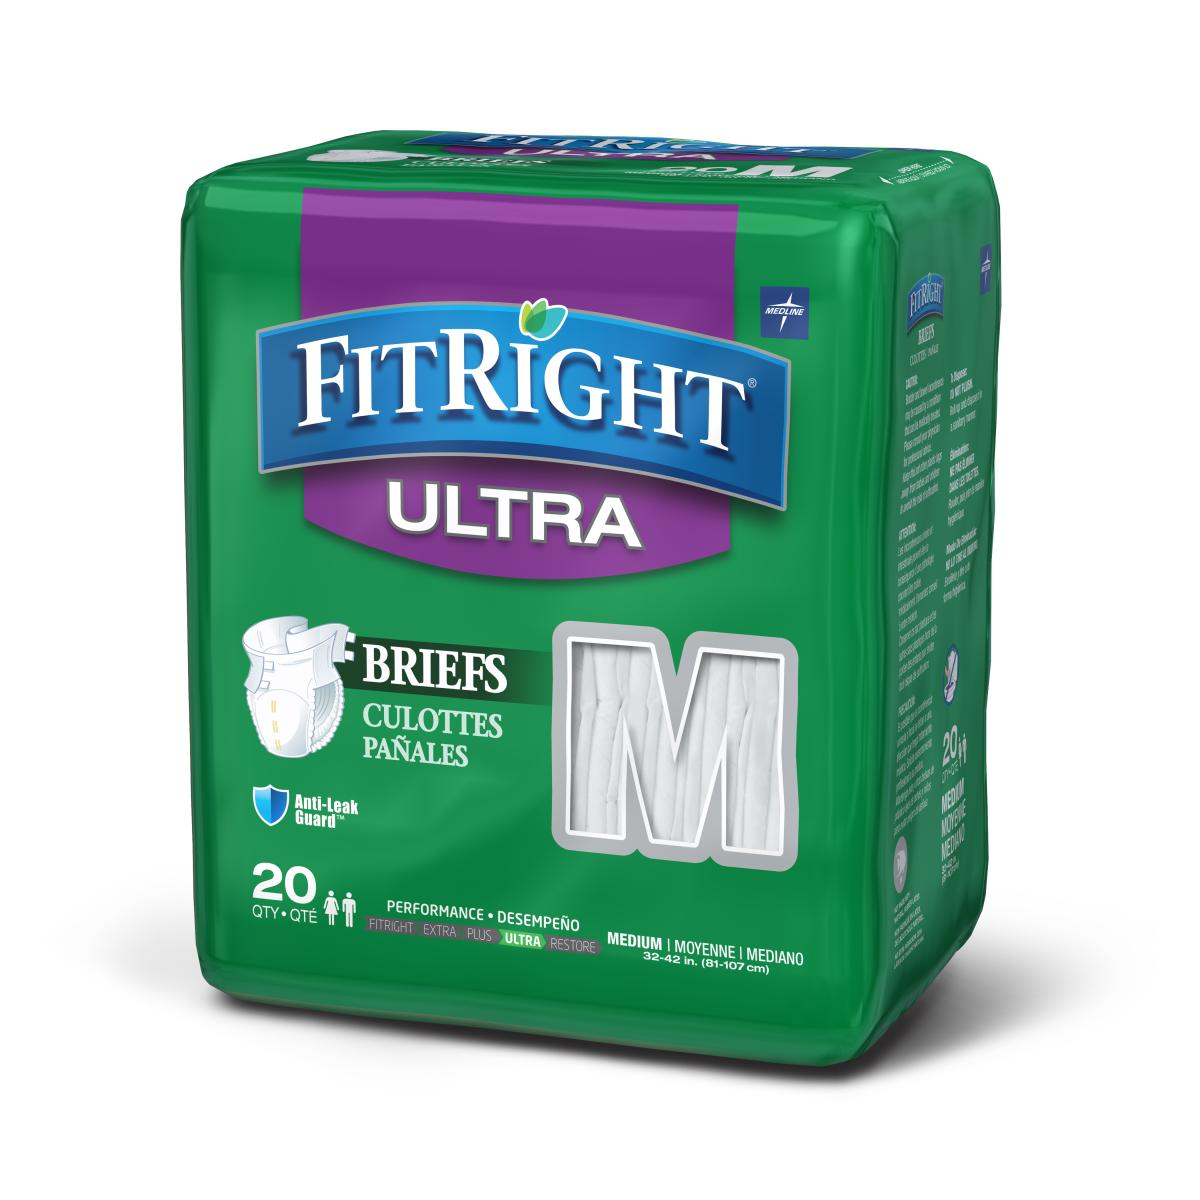 Medline FitRight Ultra Disposable Briefs, 20 Count (Pack of 4)